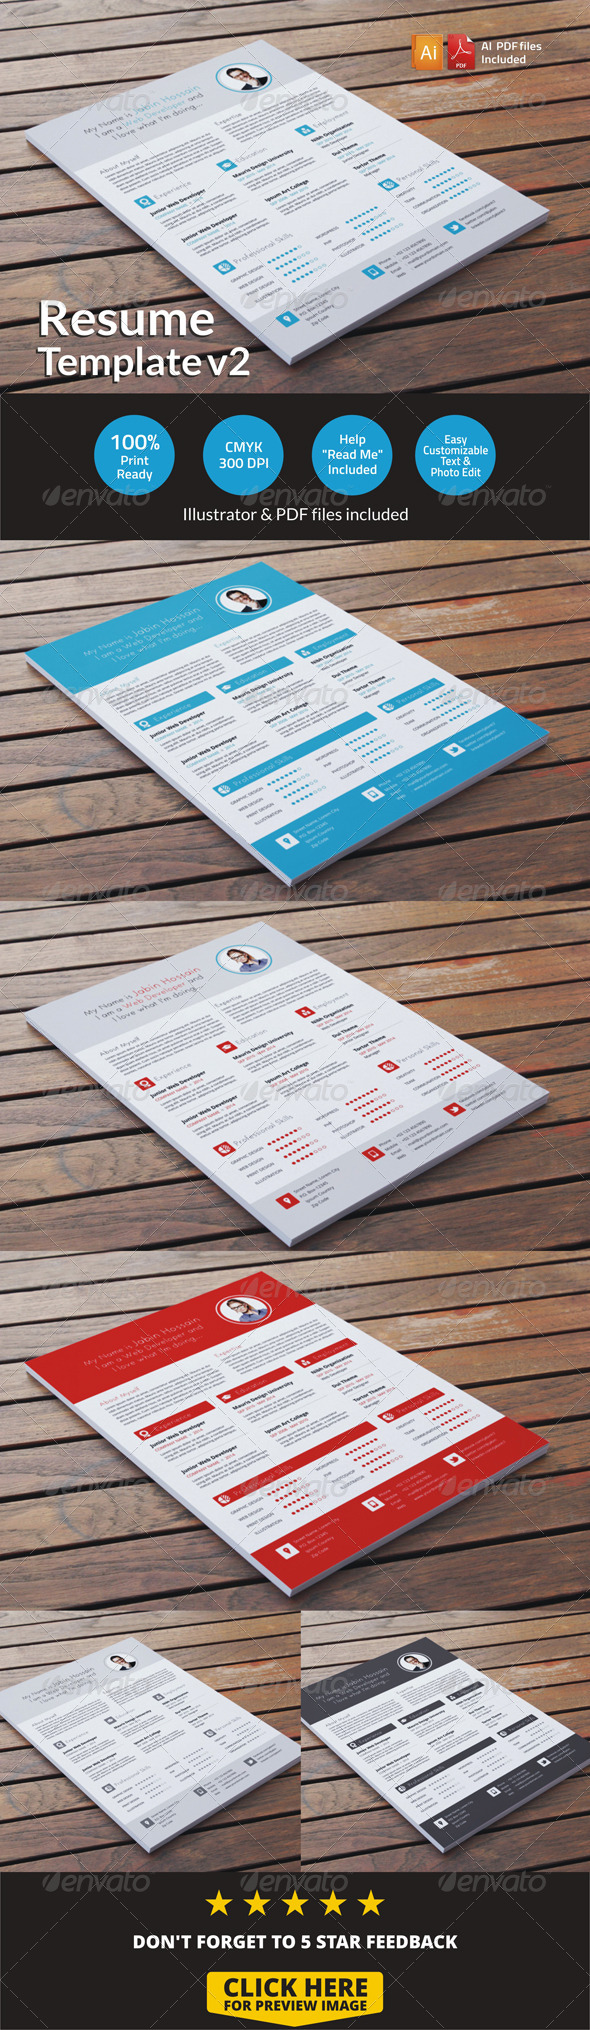 GraphicRiver Resume Template v2 6736856